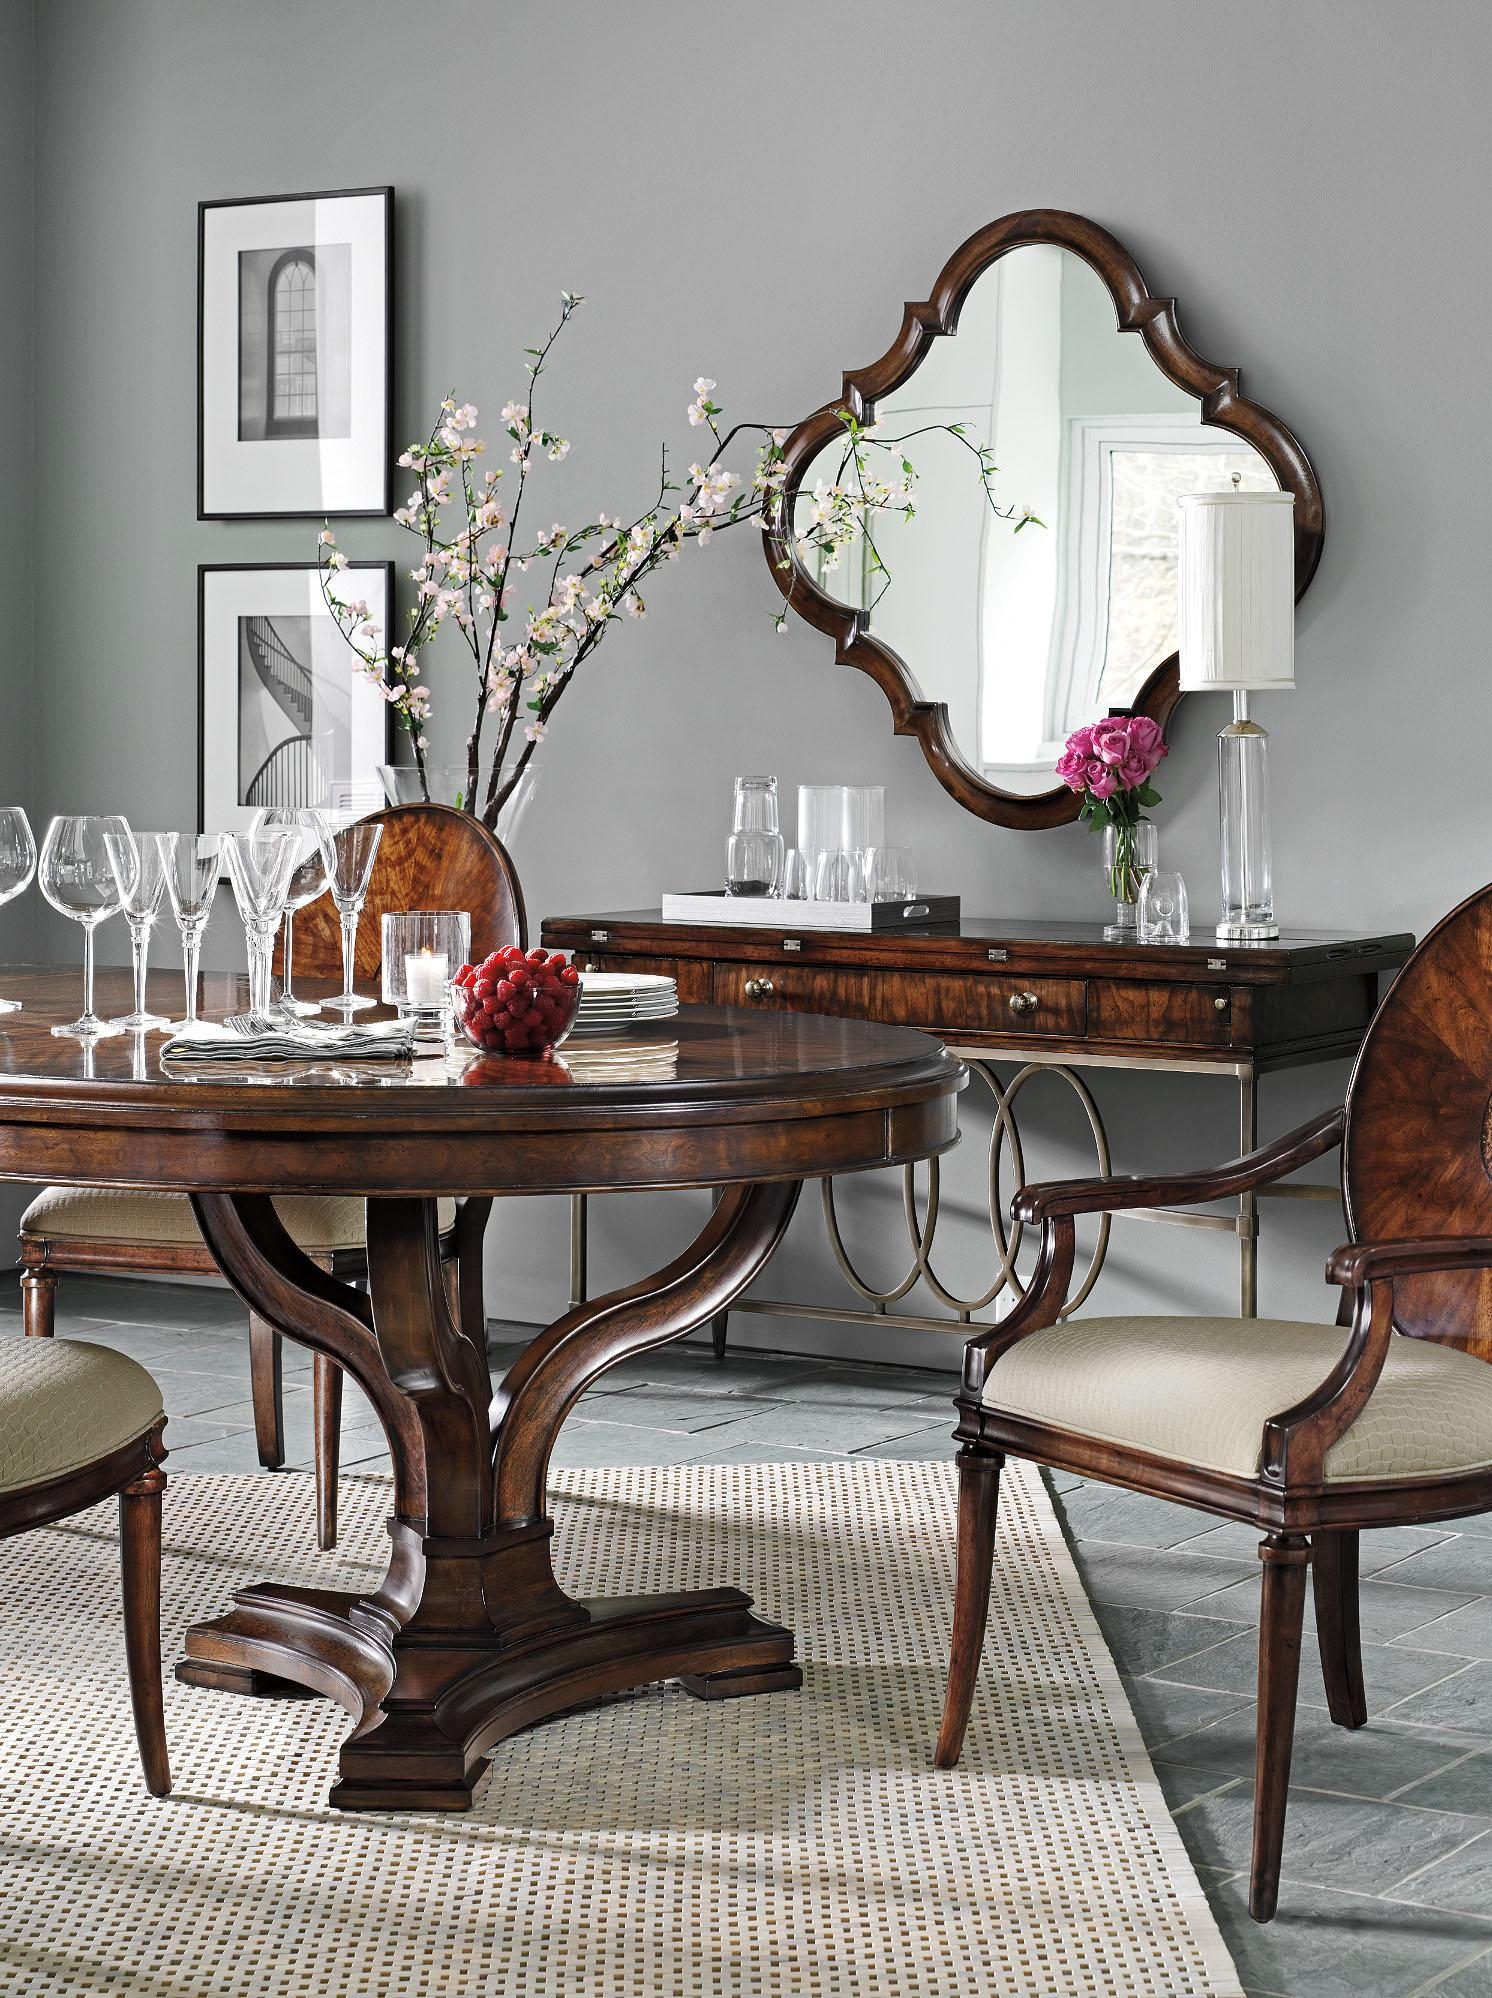 Stanley Furniture Avalon Heights Formal Dining Room Group - Item Number: 193 Dining Room Group 3